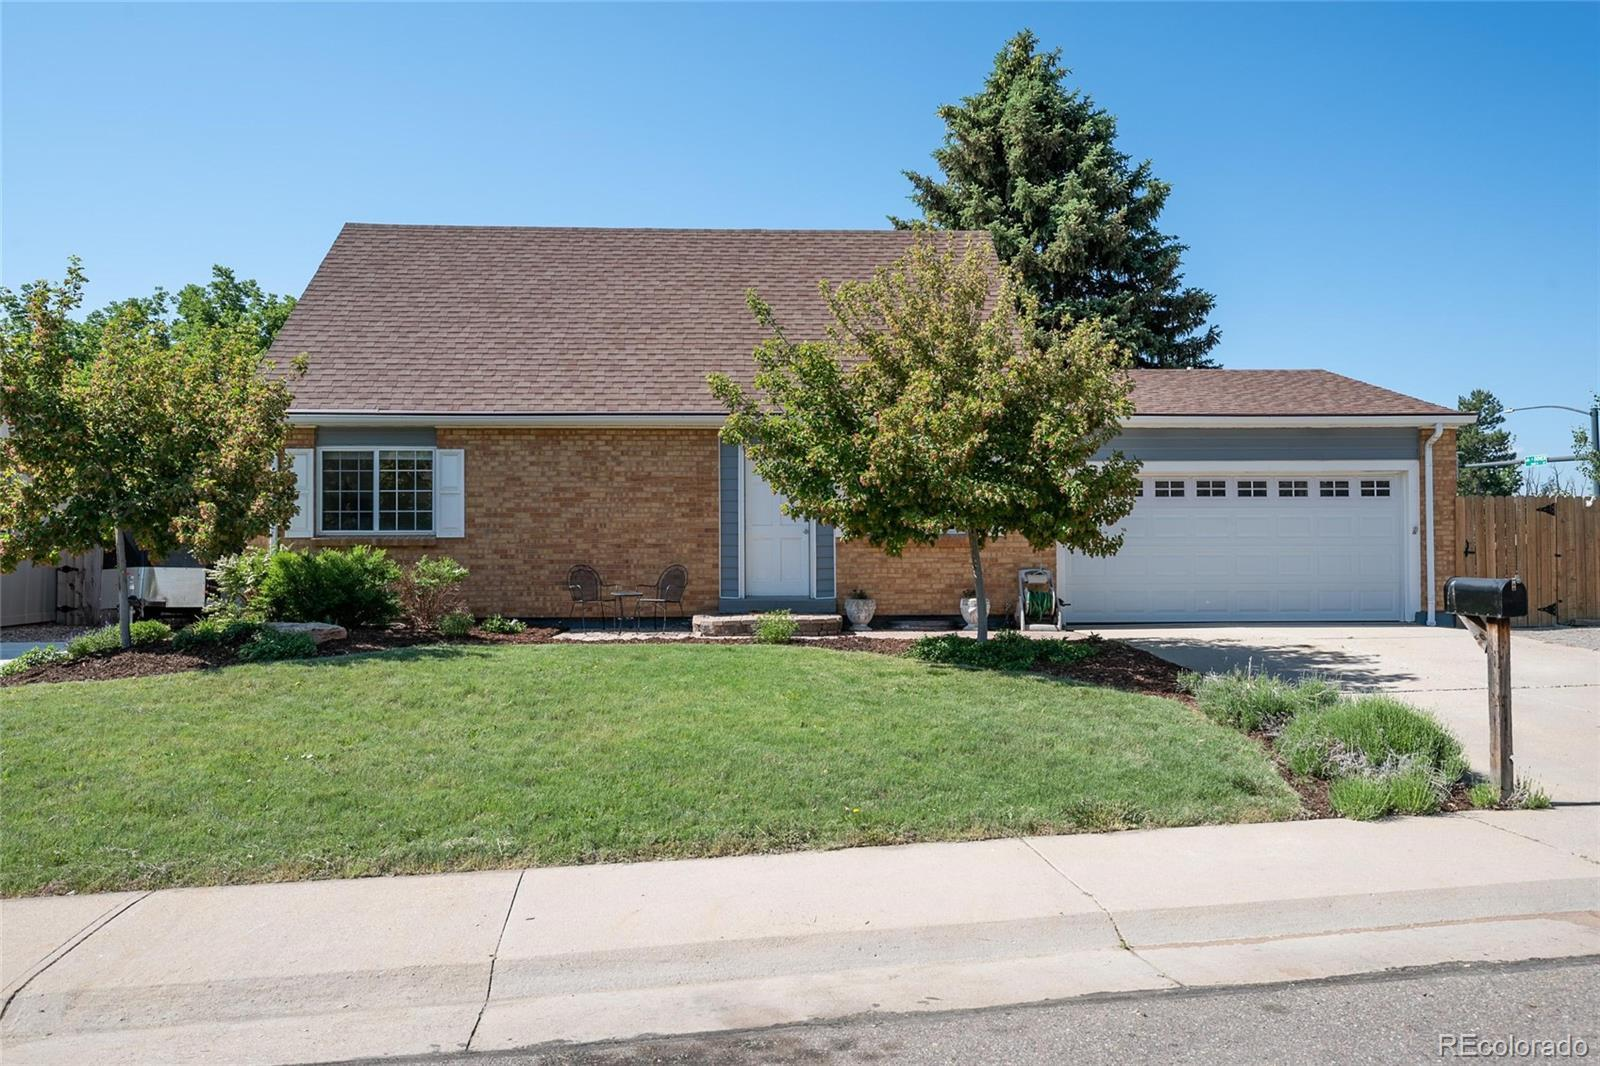 8570 W 88th Place, Westminster, CO 80021 - #: 6831508